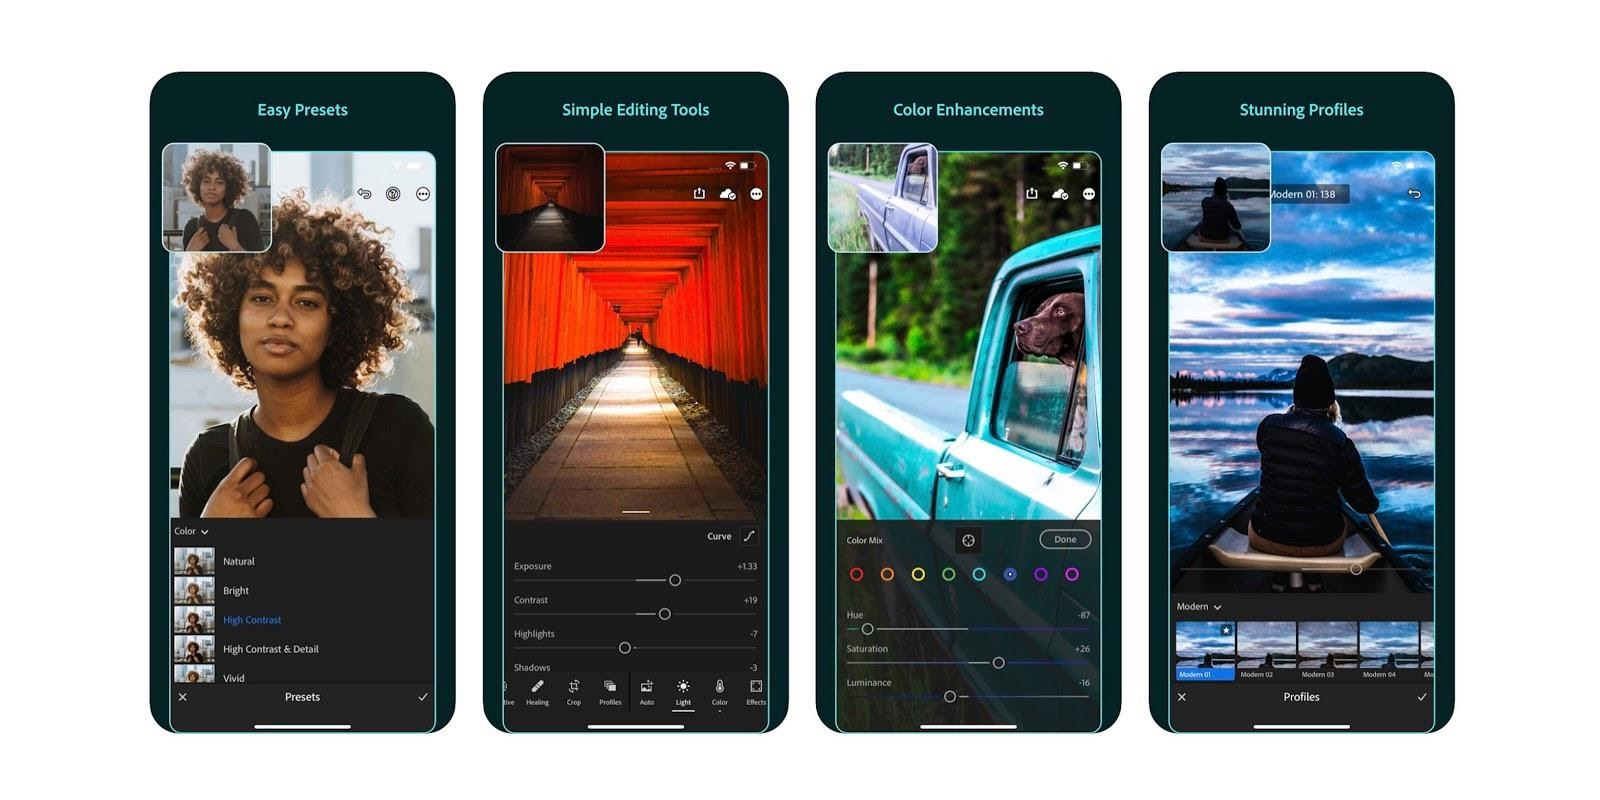 Adobe confirms Lightroom iOS photos erased due to update bug are 'not  recoverable' - 9to5Mac